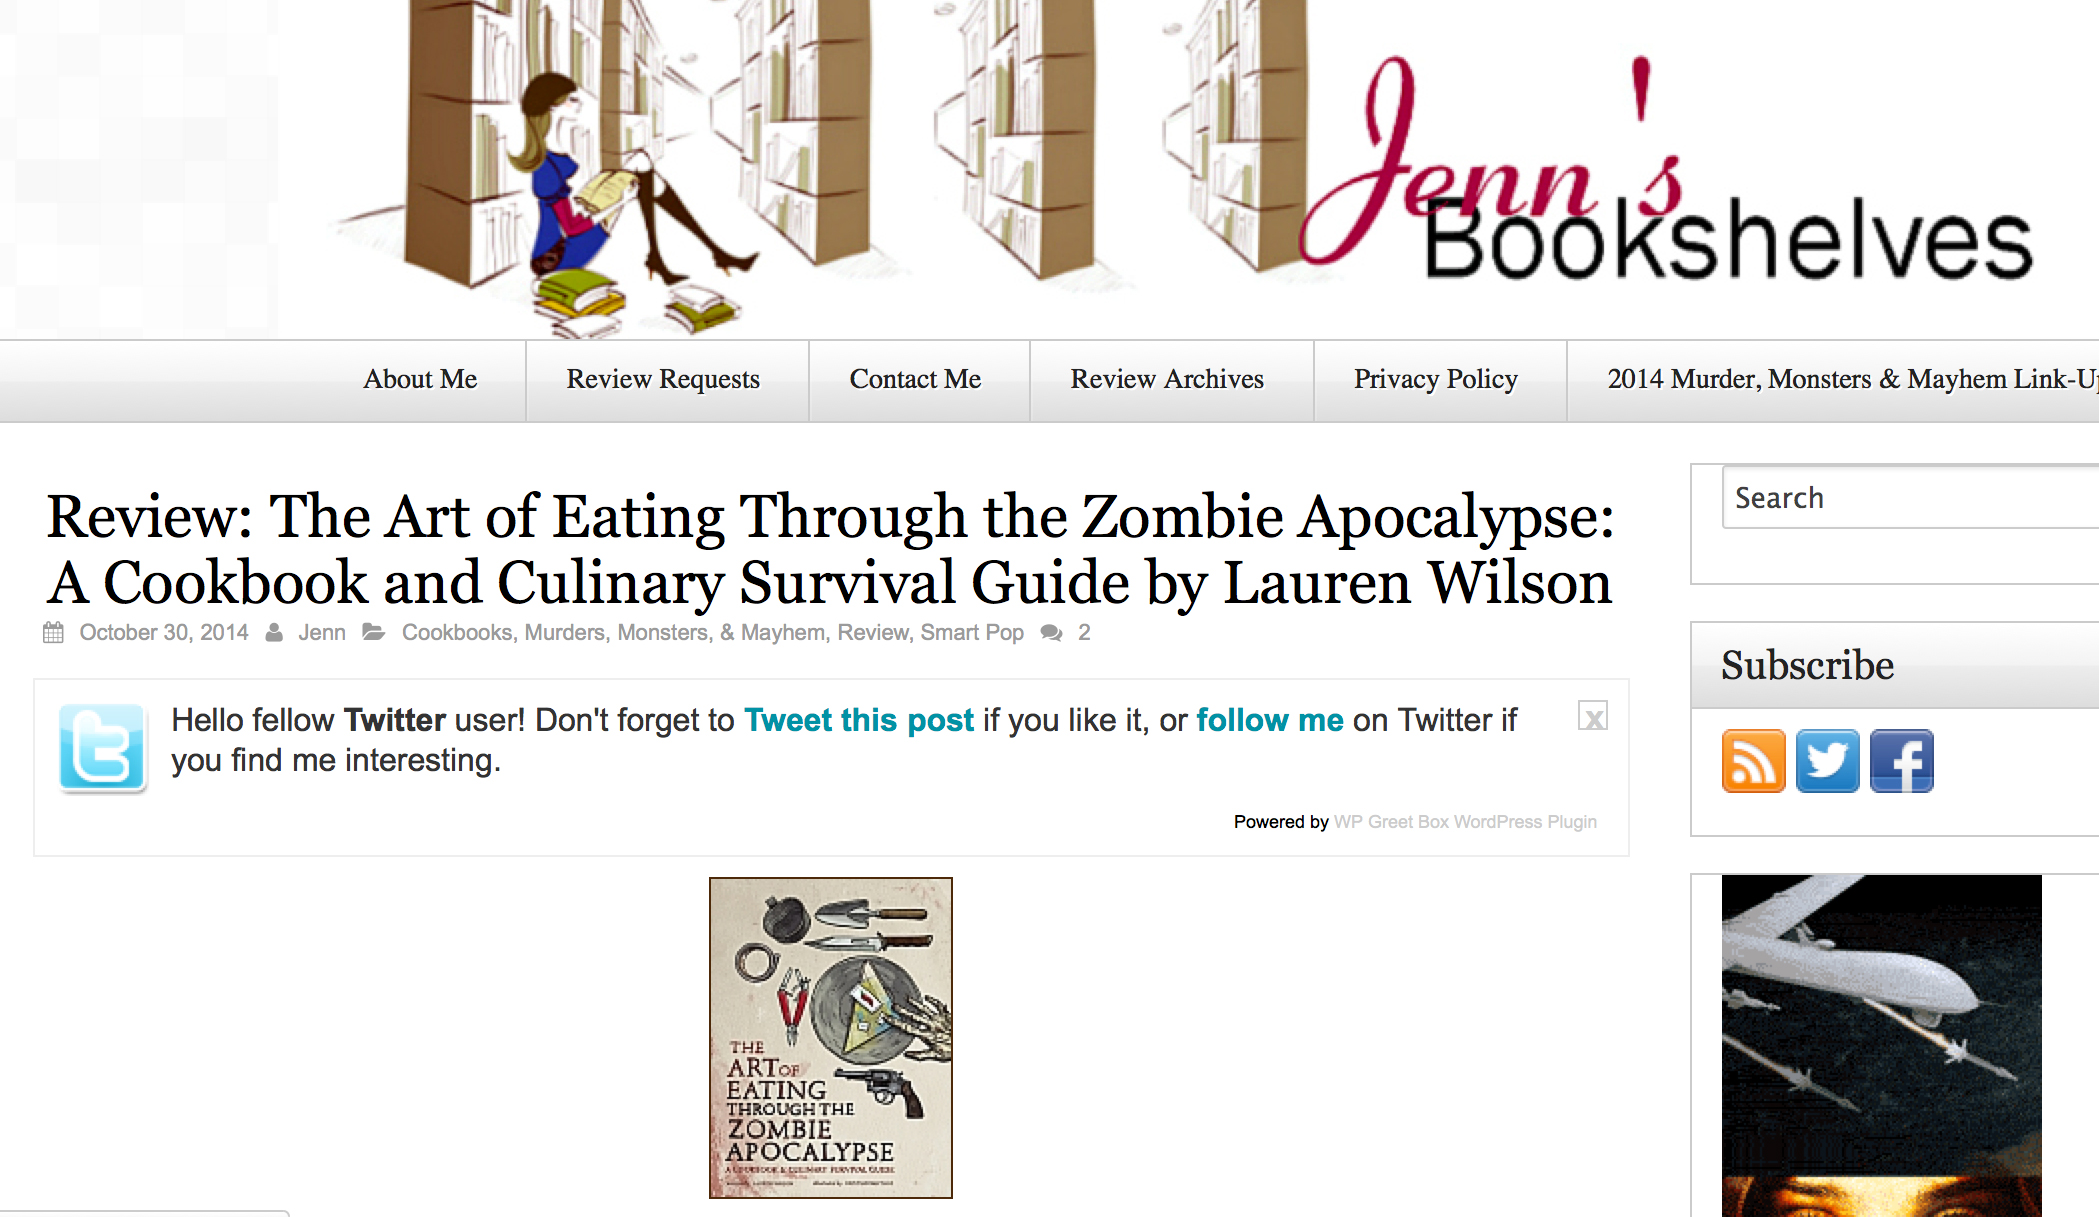 Review of The Art of Eating Through the Zombie Apocalypse on Jenn's Bookshelves.